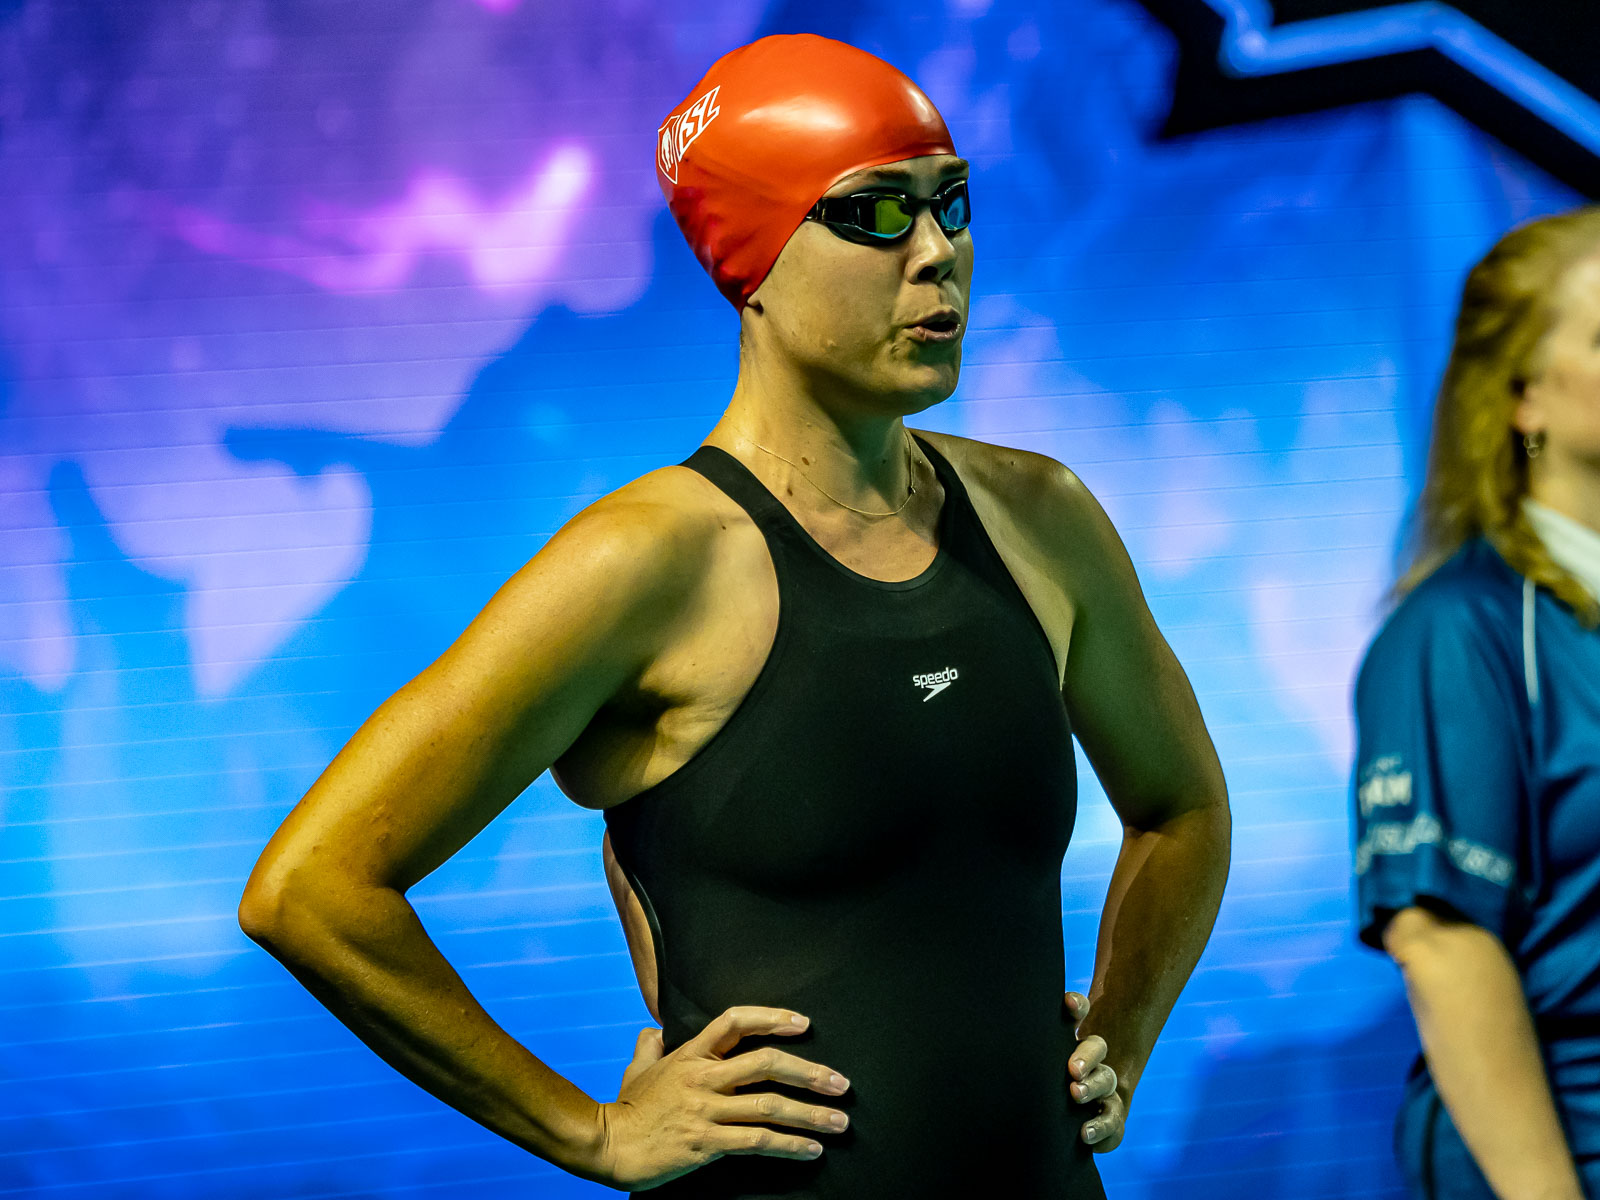 Natalie Coughlin Makes Comeback With ISL For 'Next Generation'